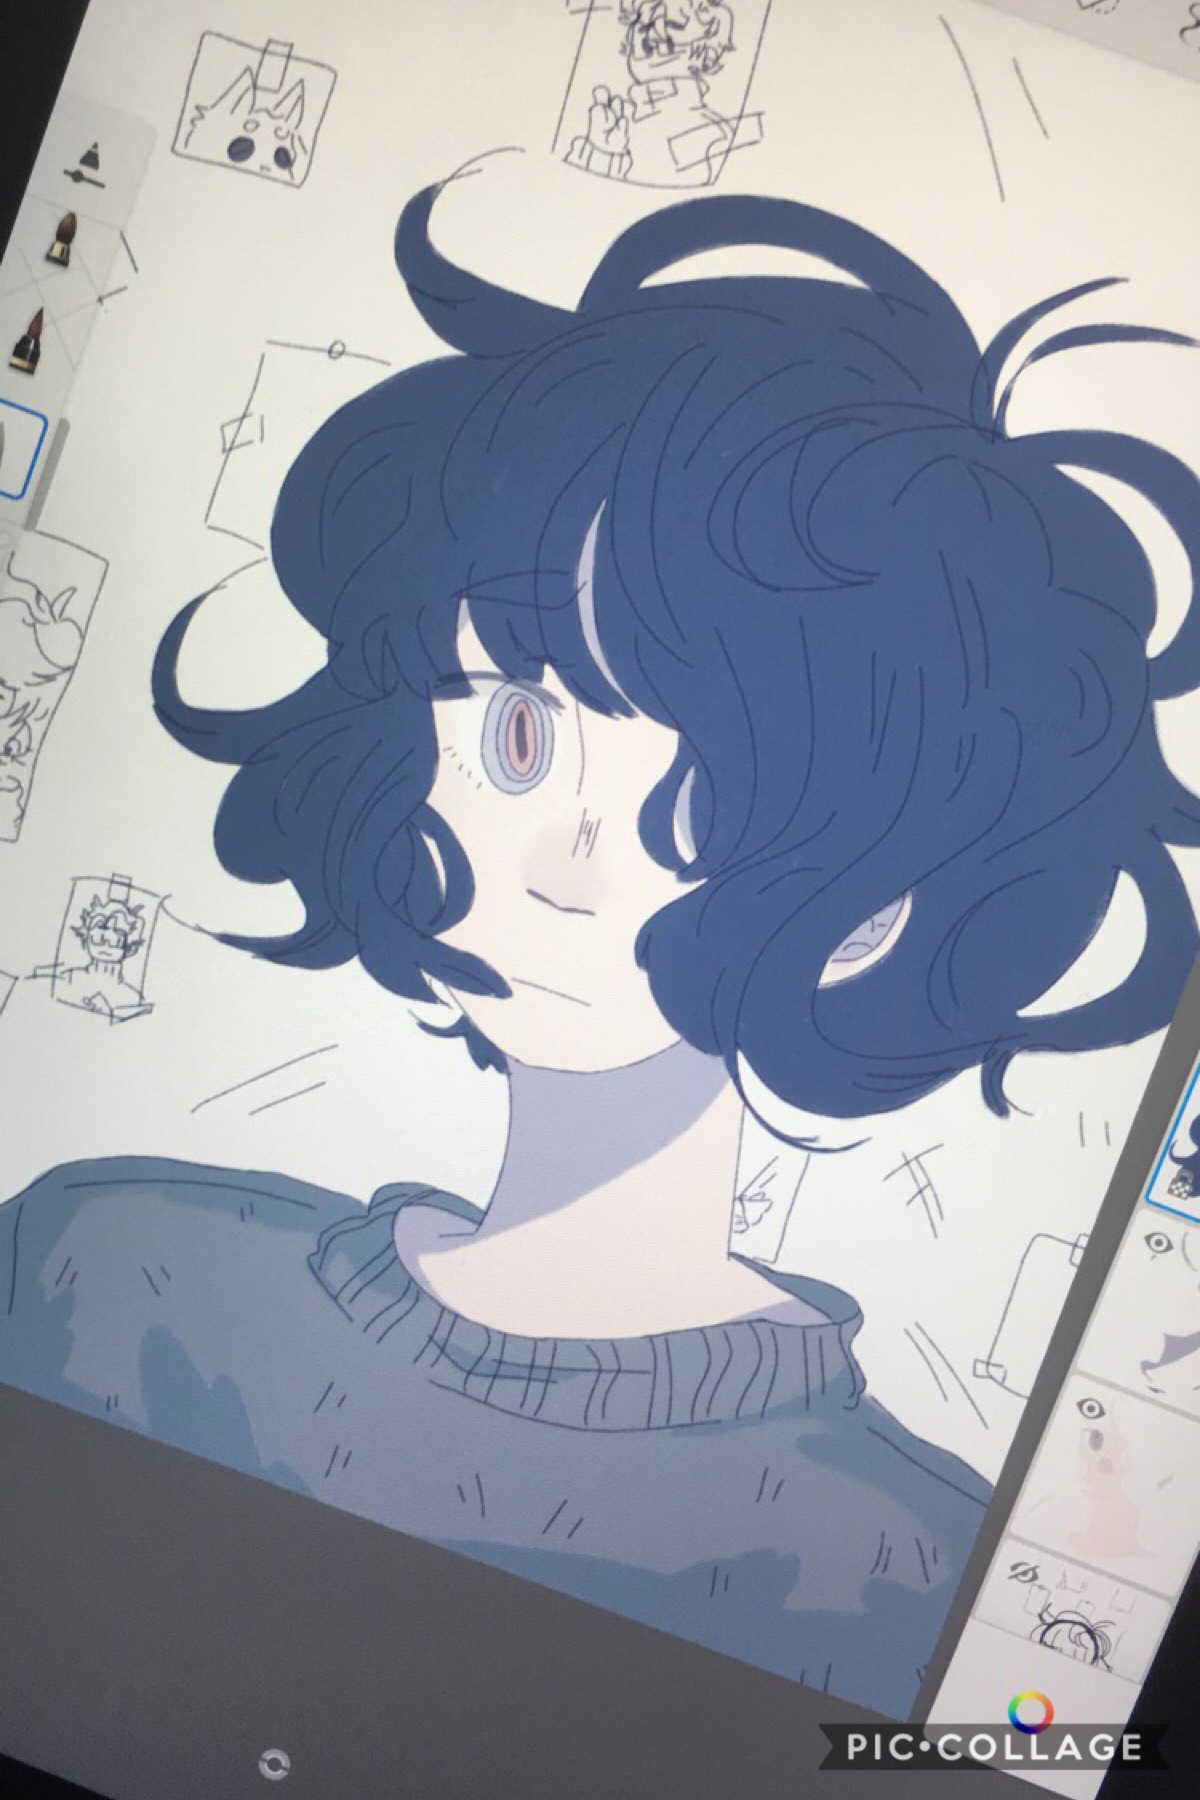 This may take forever so here's a little sneak peek